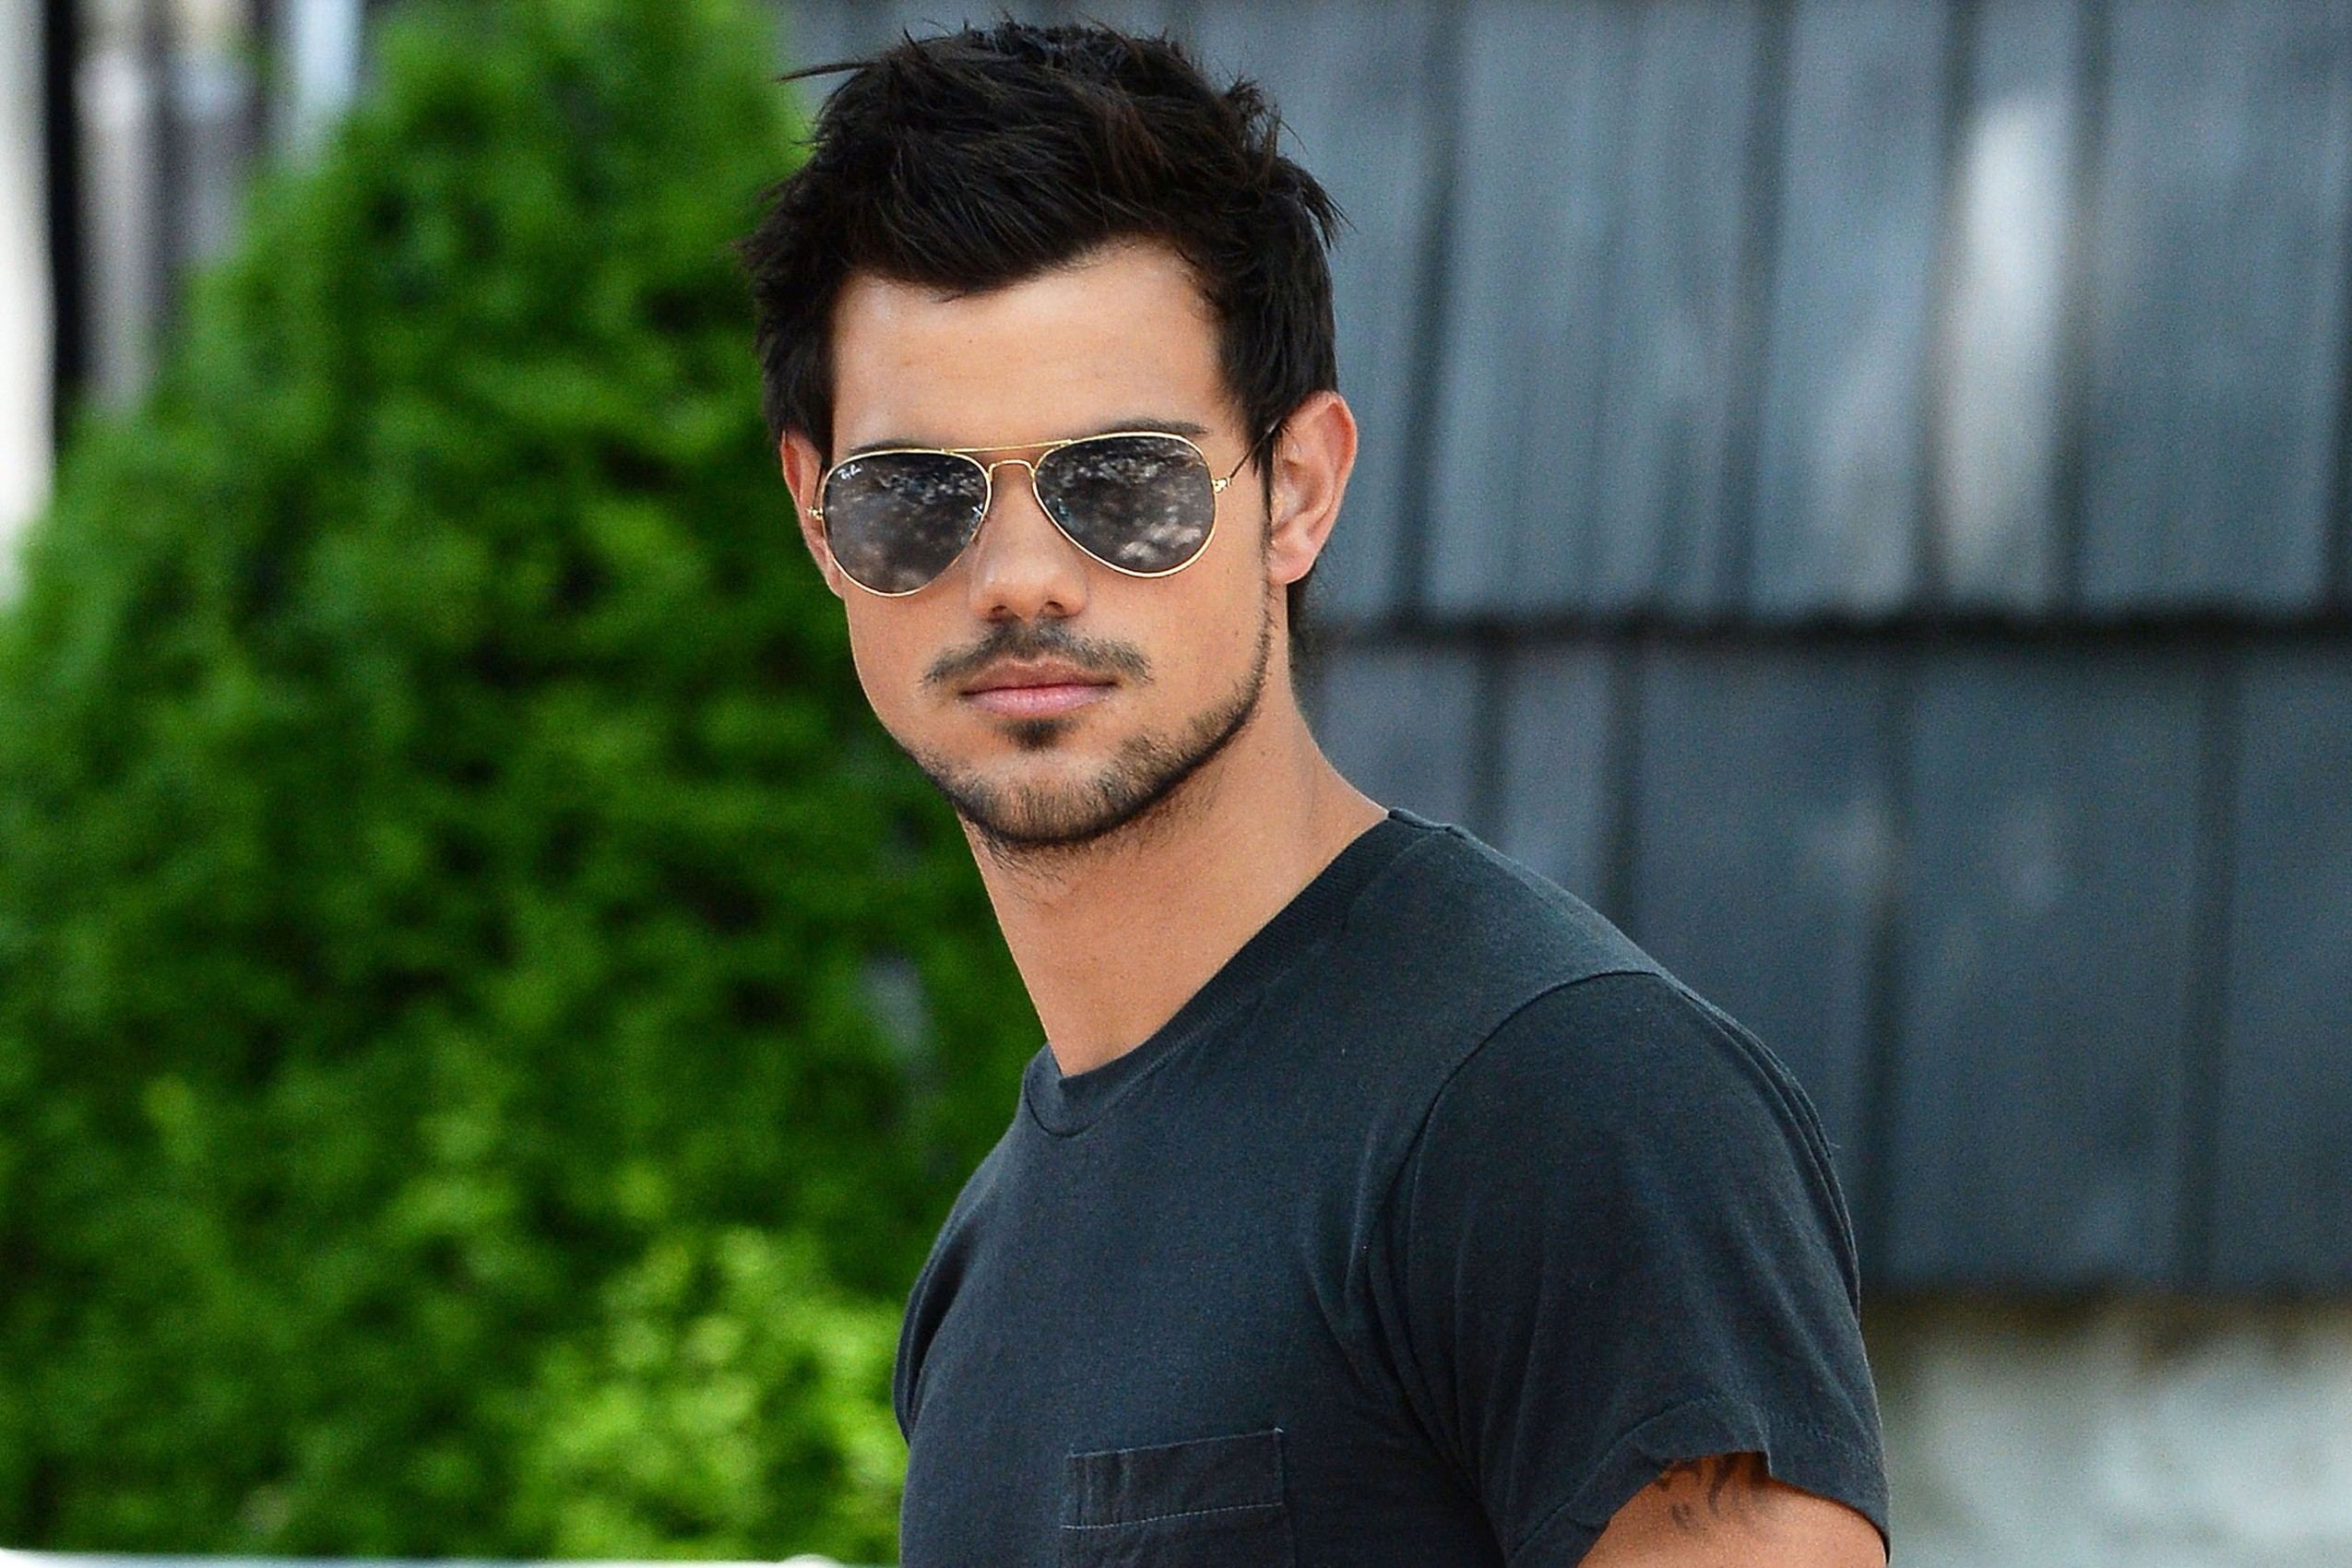 Taylor Lautner HD Wallpapers for desktop download